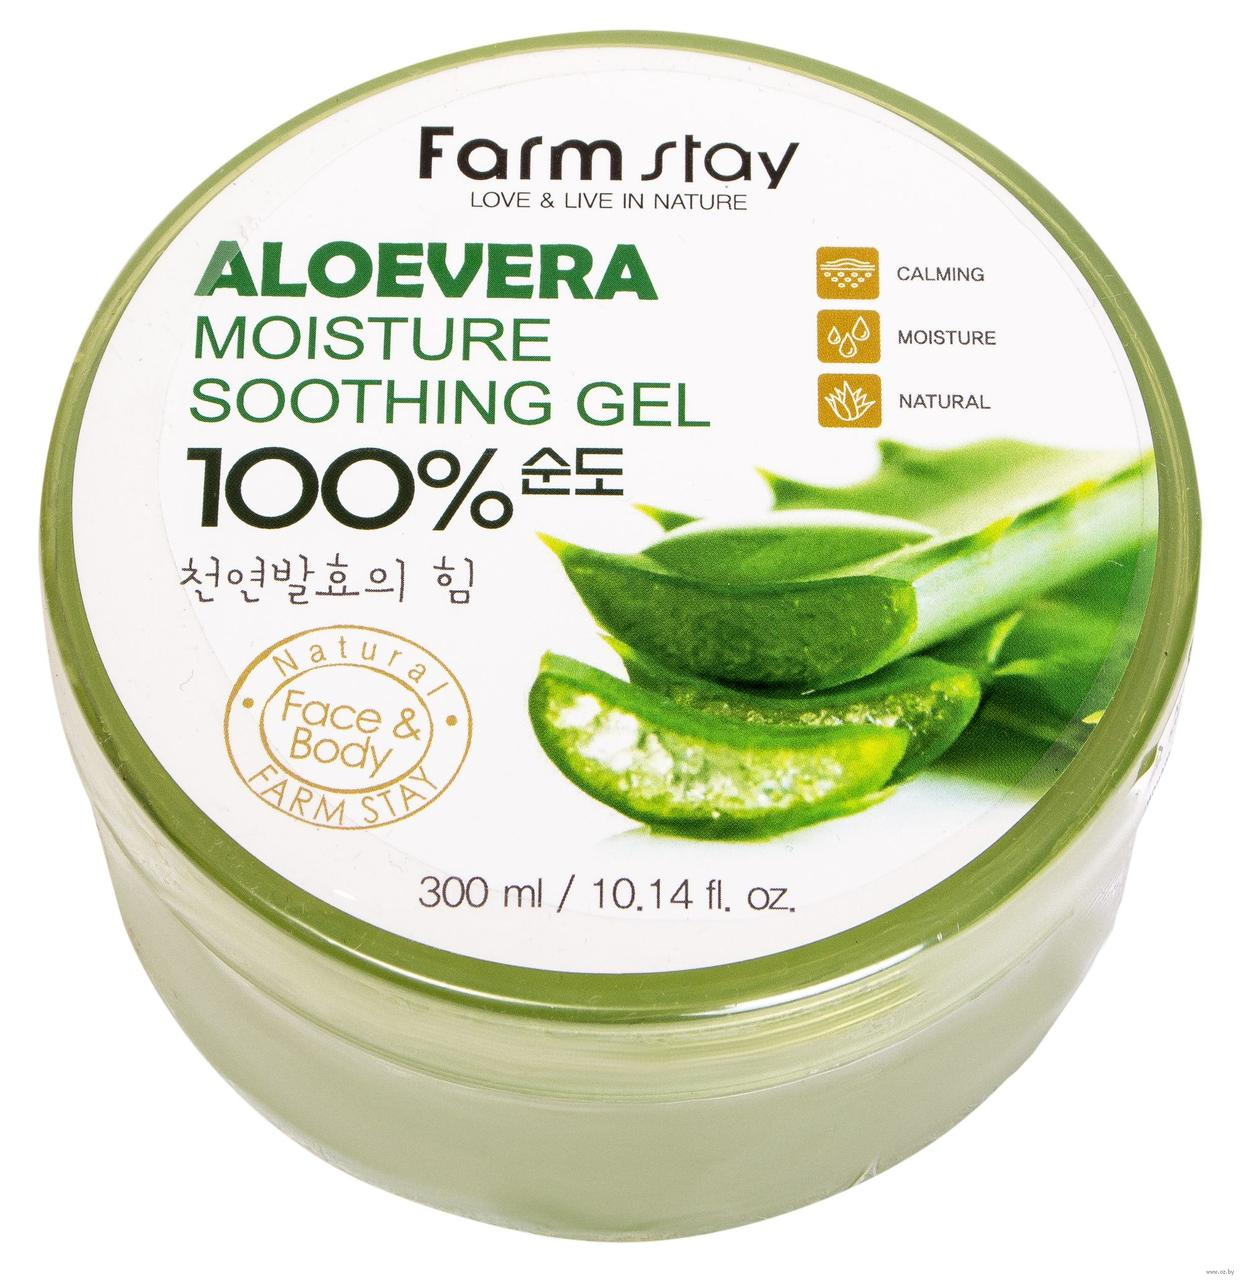 Гель для лица и тела Farm Stay Aloe Vera Moisture Soothing Gel 300 ml.